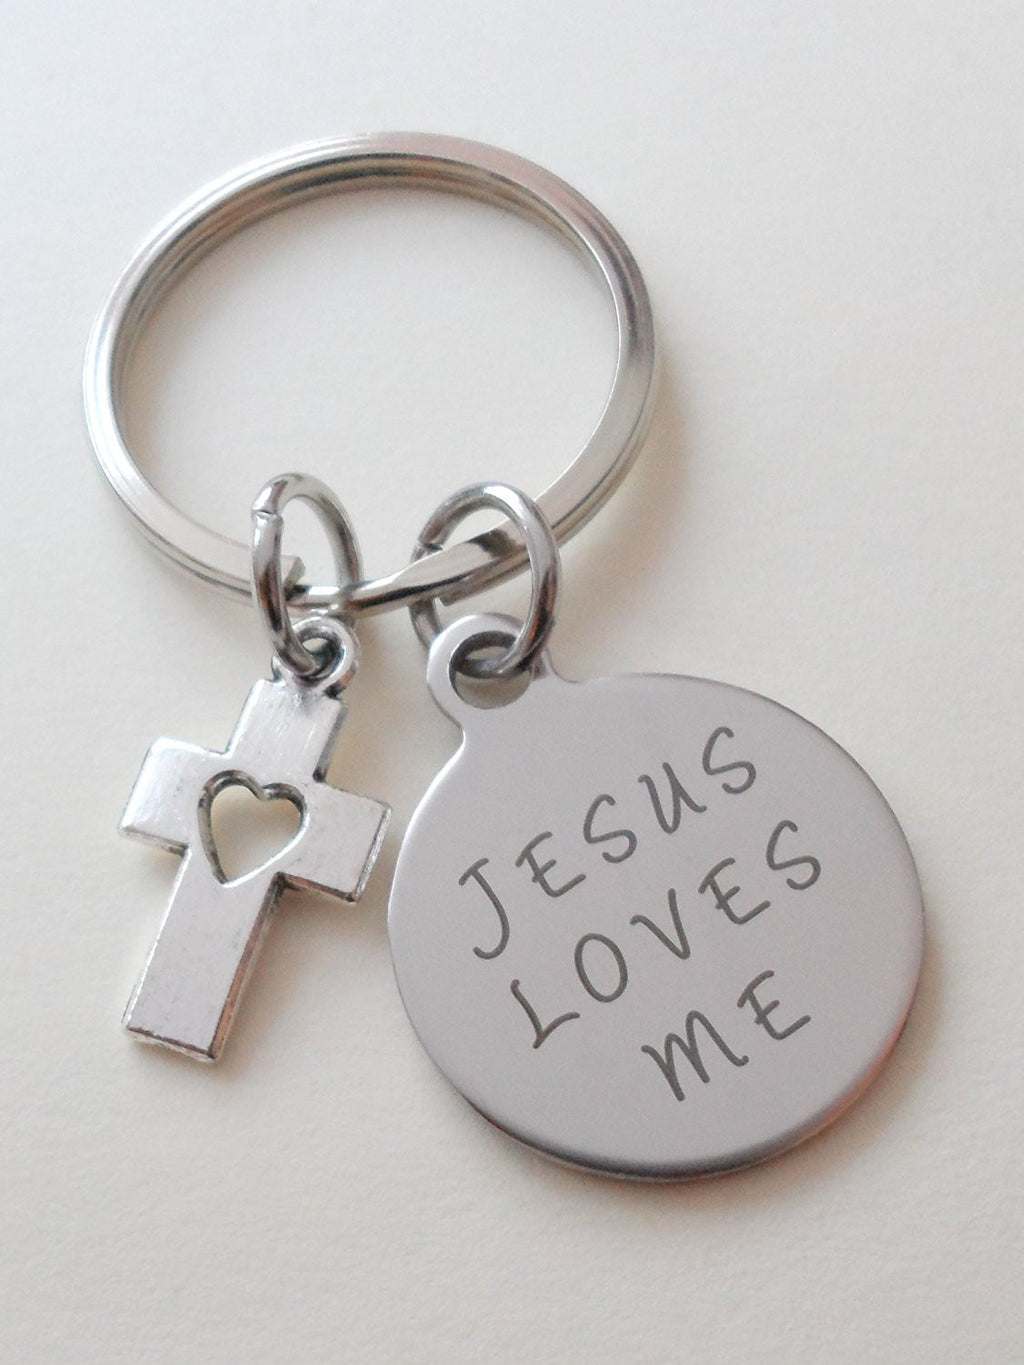 Jesus Loves Me Small Saying Disc Keychain with Small Cross Charm, Religious Keychain